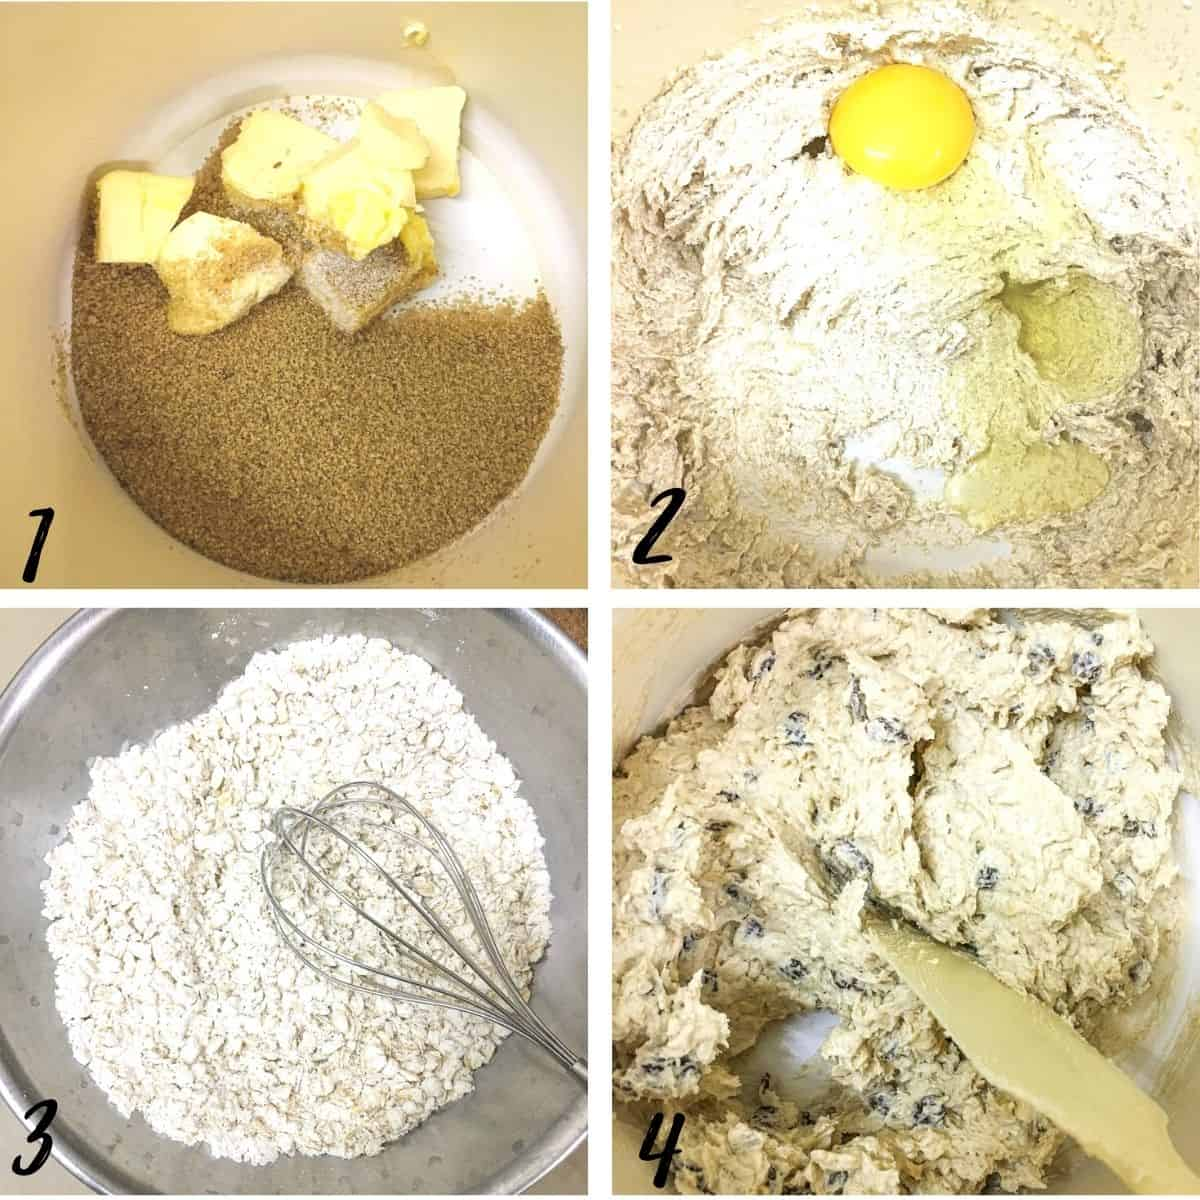 A poster of 4 images showing how to mix oatmeal cookies dough